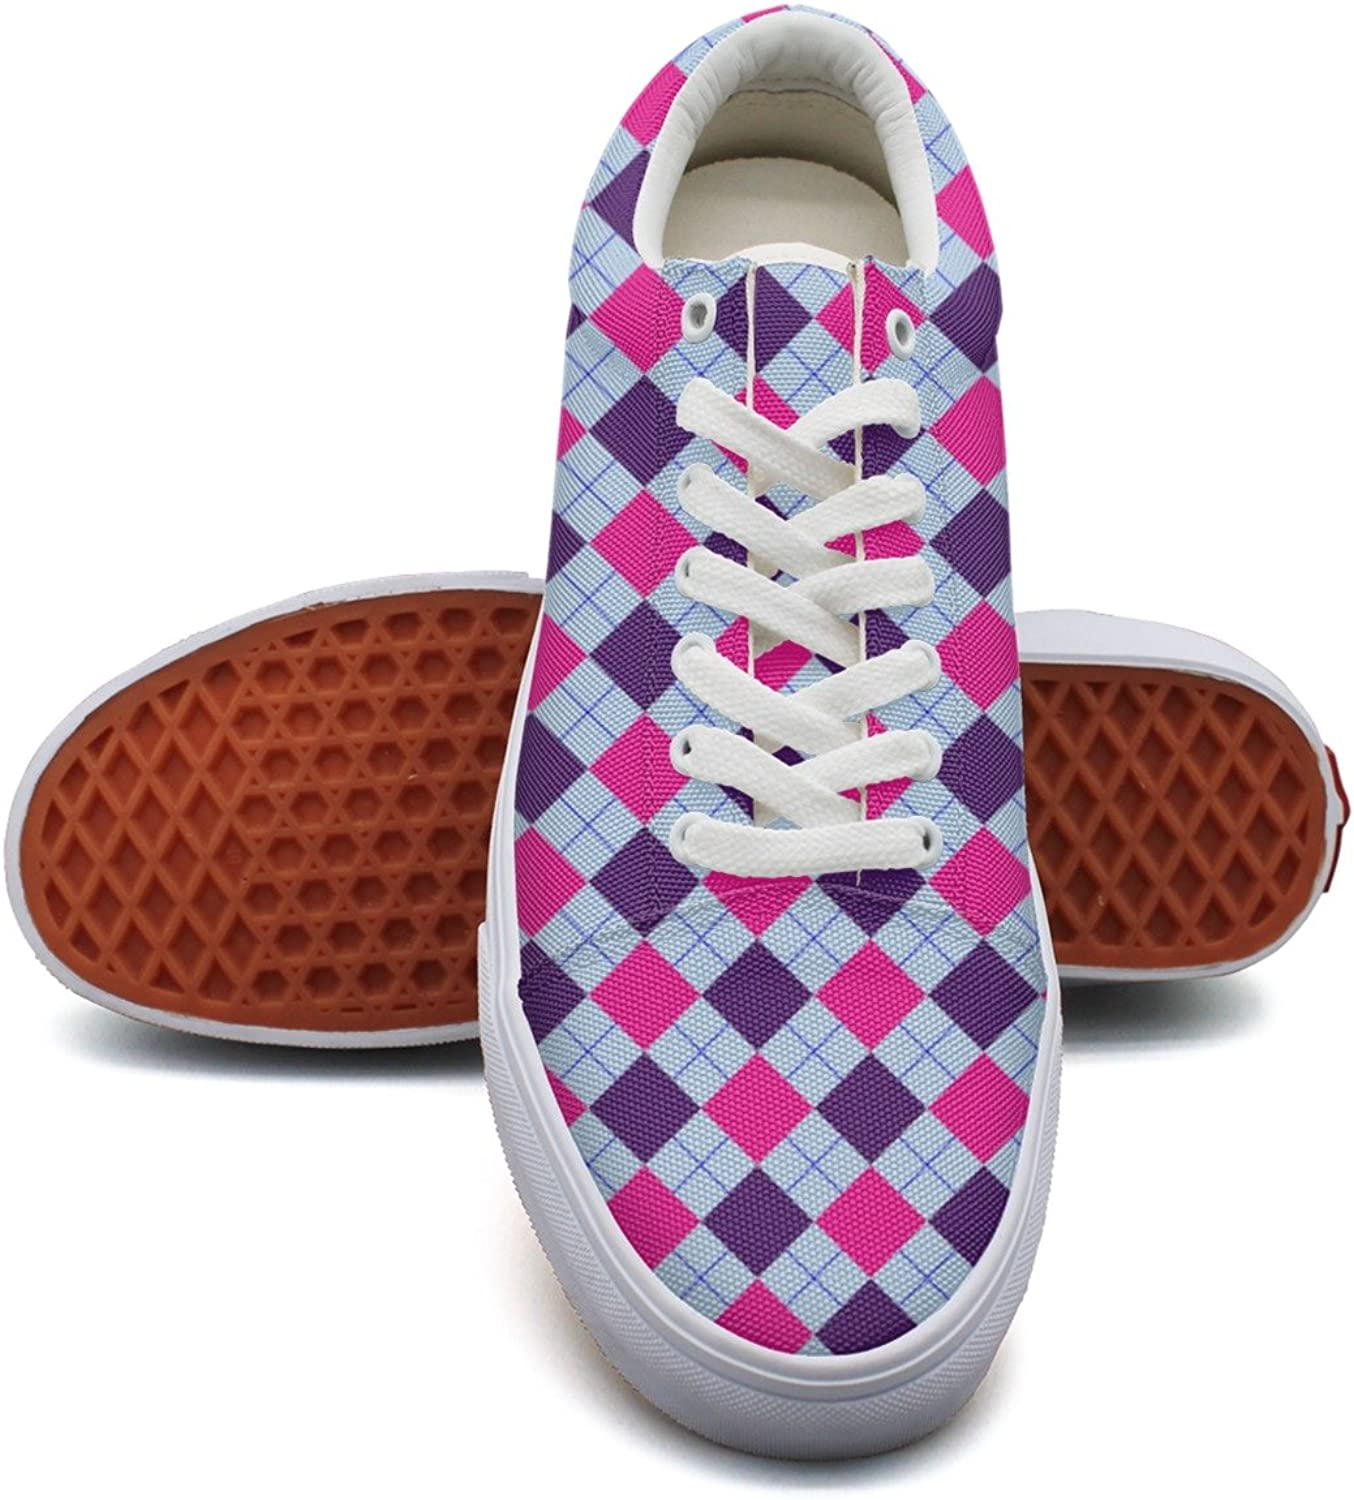 Charmarm Pink Purple Checkboard Womens Casual Low Top Canvas Slip-on shoes